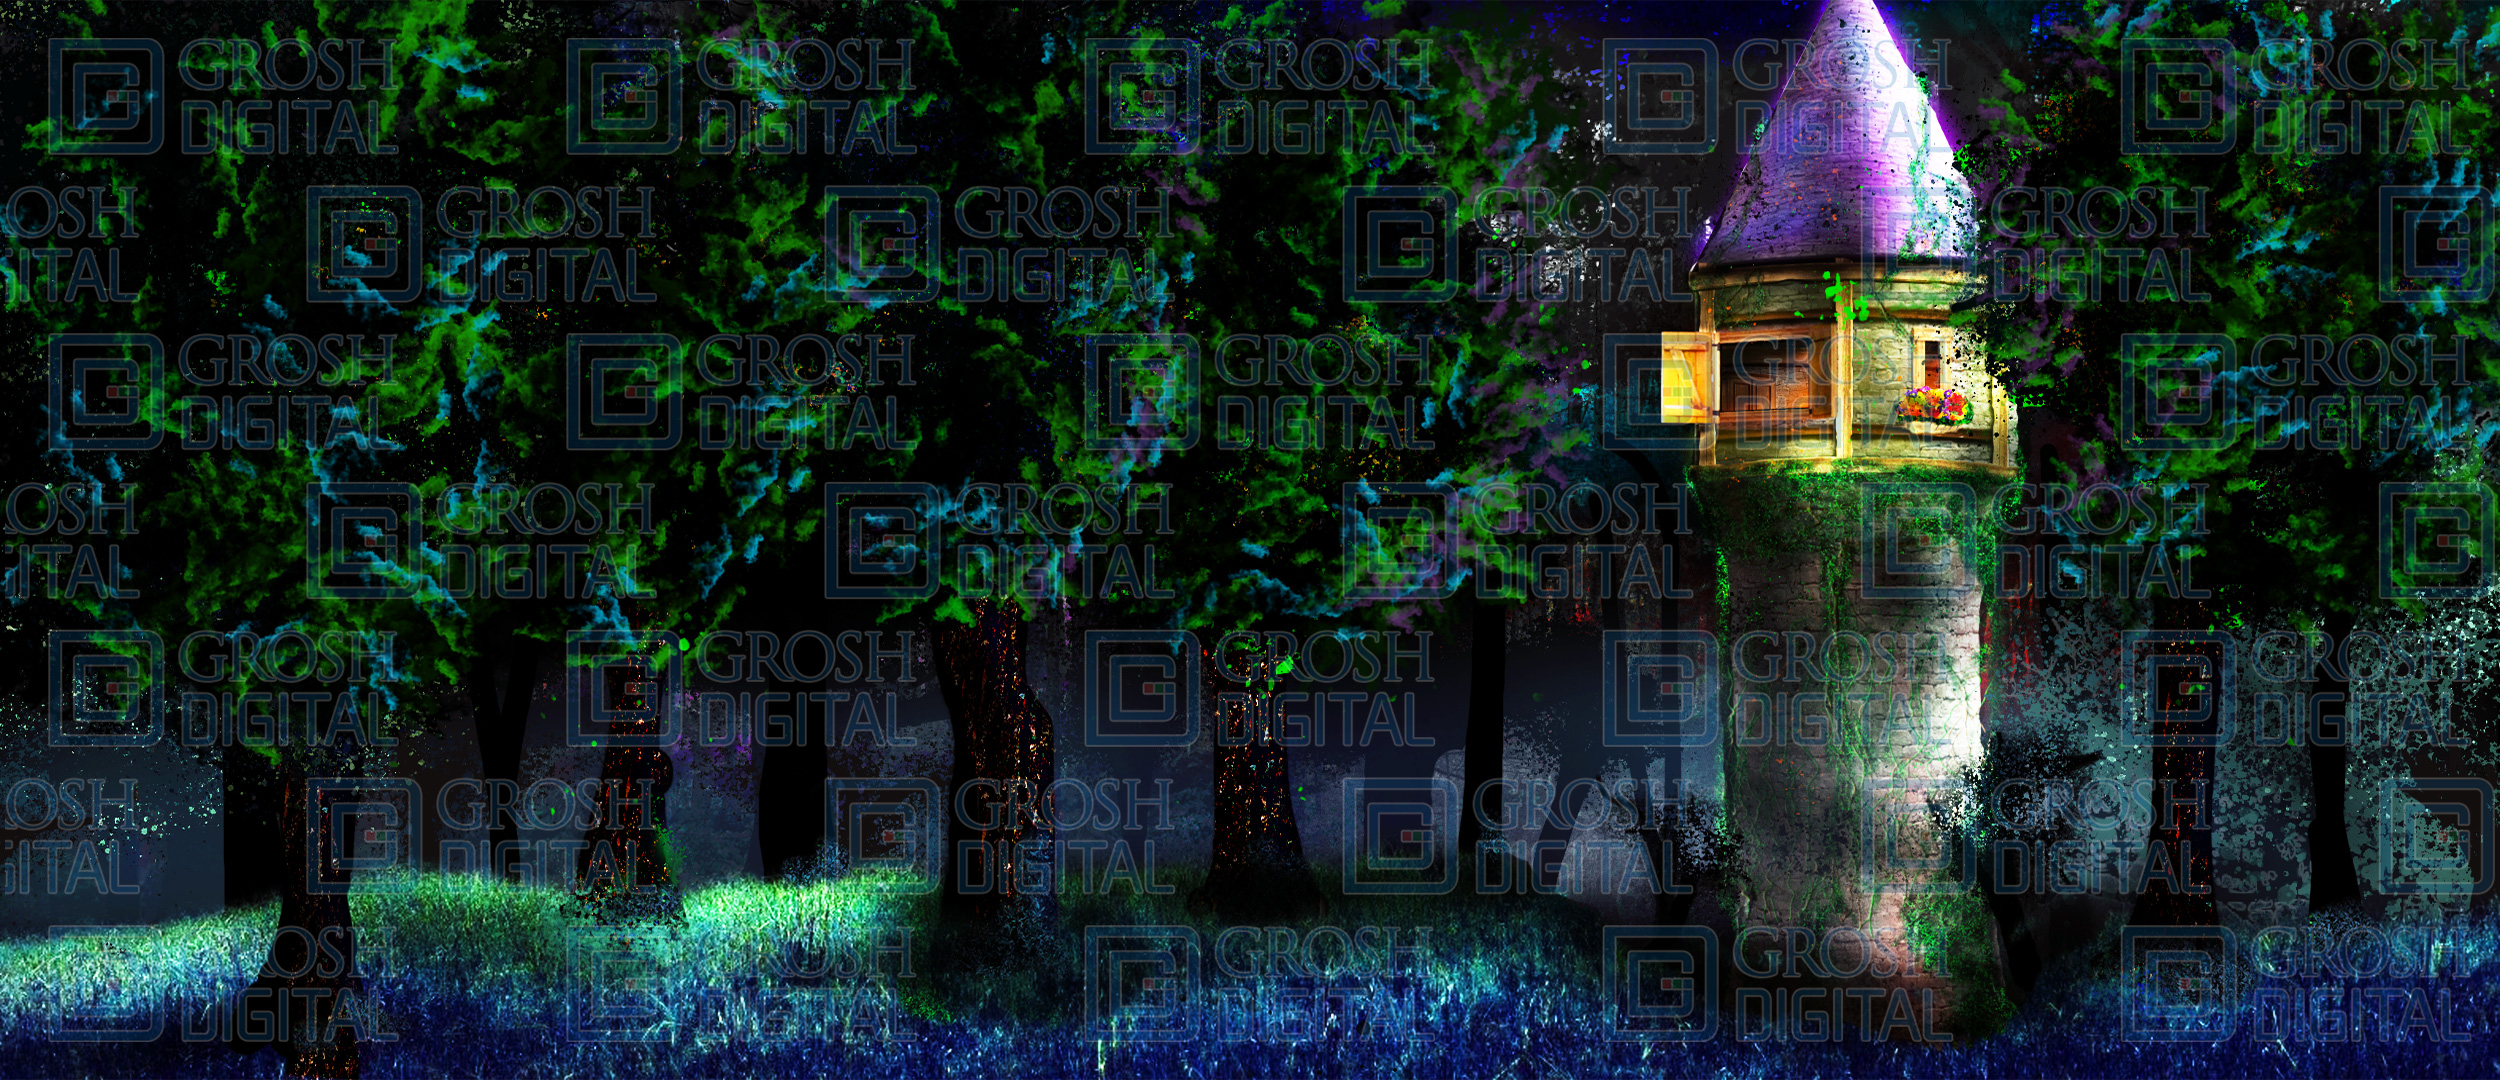 Rapunzel's Tower Exterior Projected Backdrop for Exteriors, Forest, Into the Woods